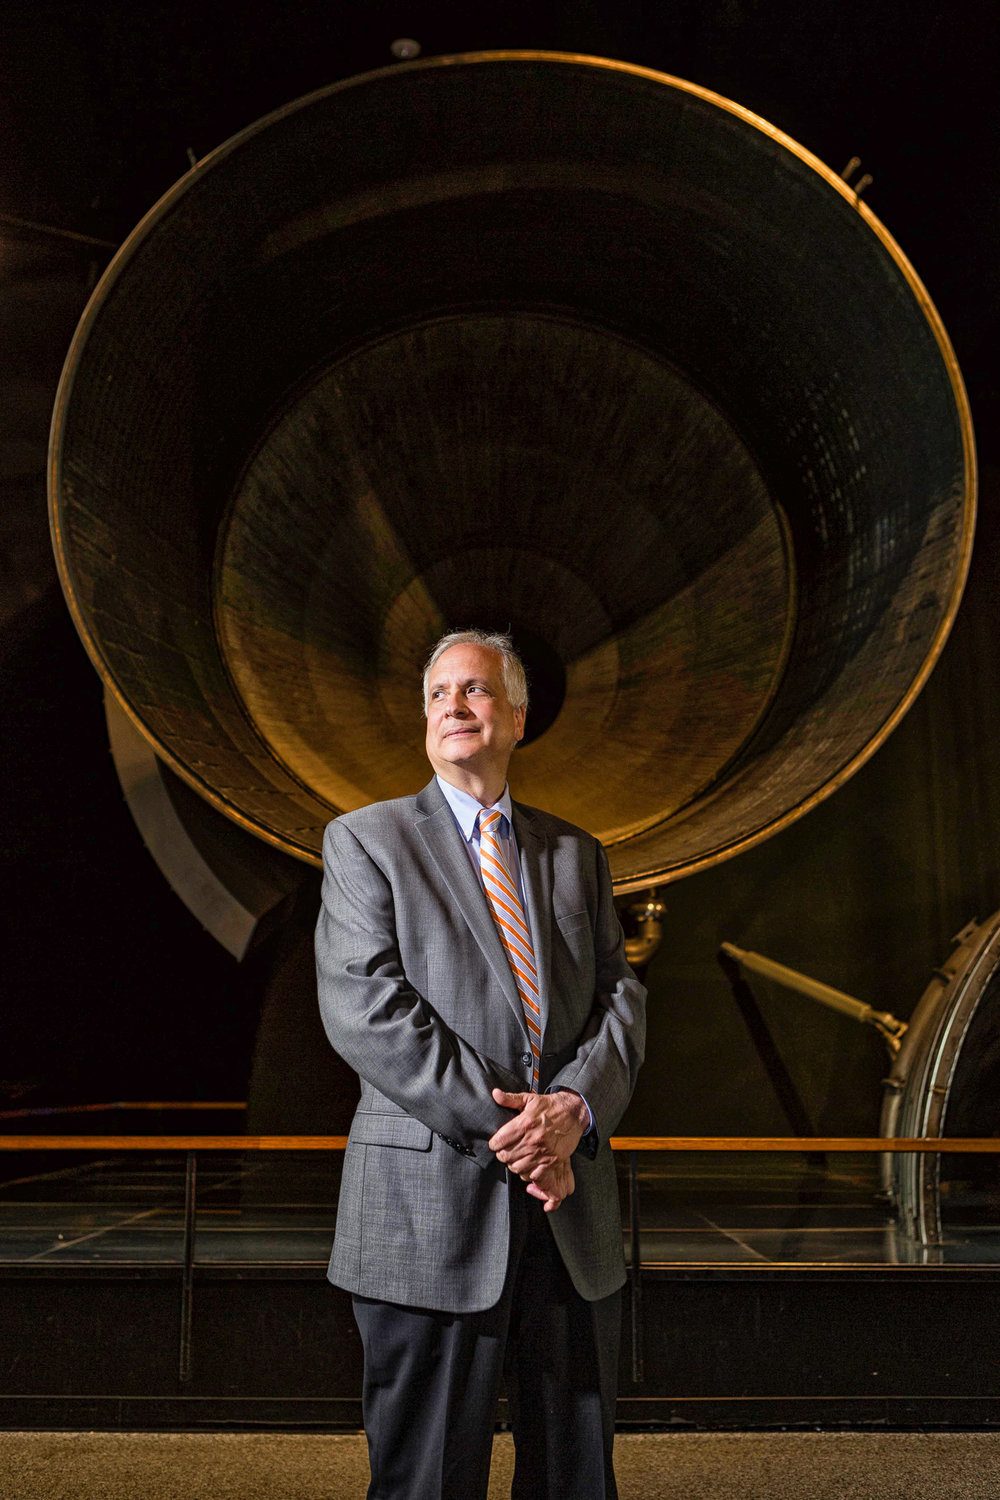 Ed Hoffman, Chief Knowledge Officer, NASA. Made at the Smithsonian Air & Space museum in Washington, DC